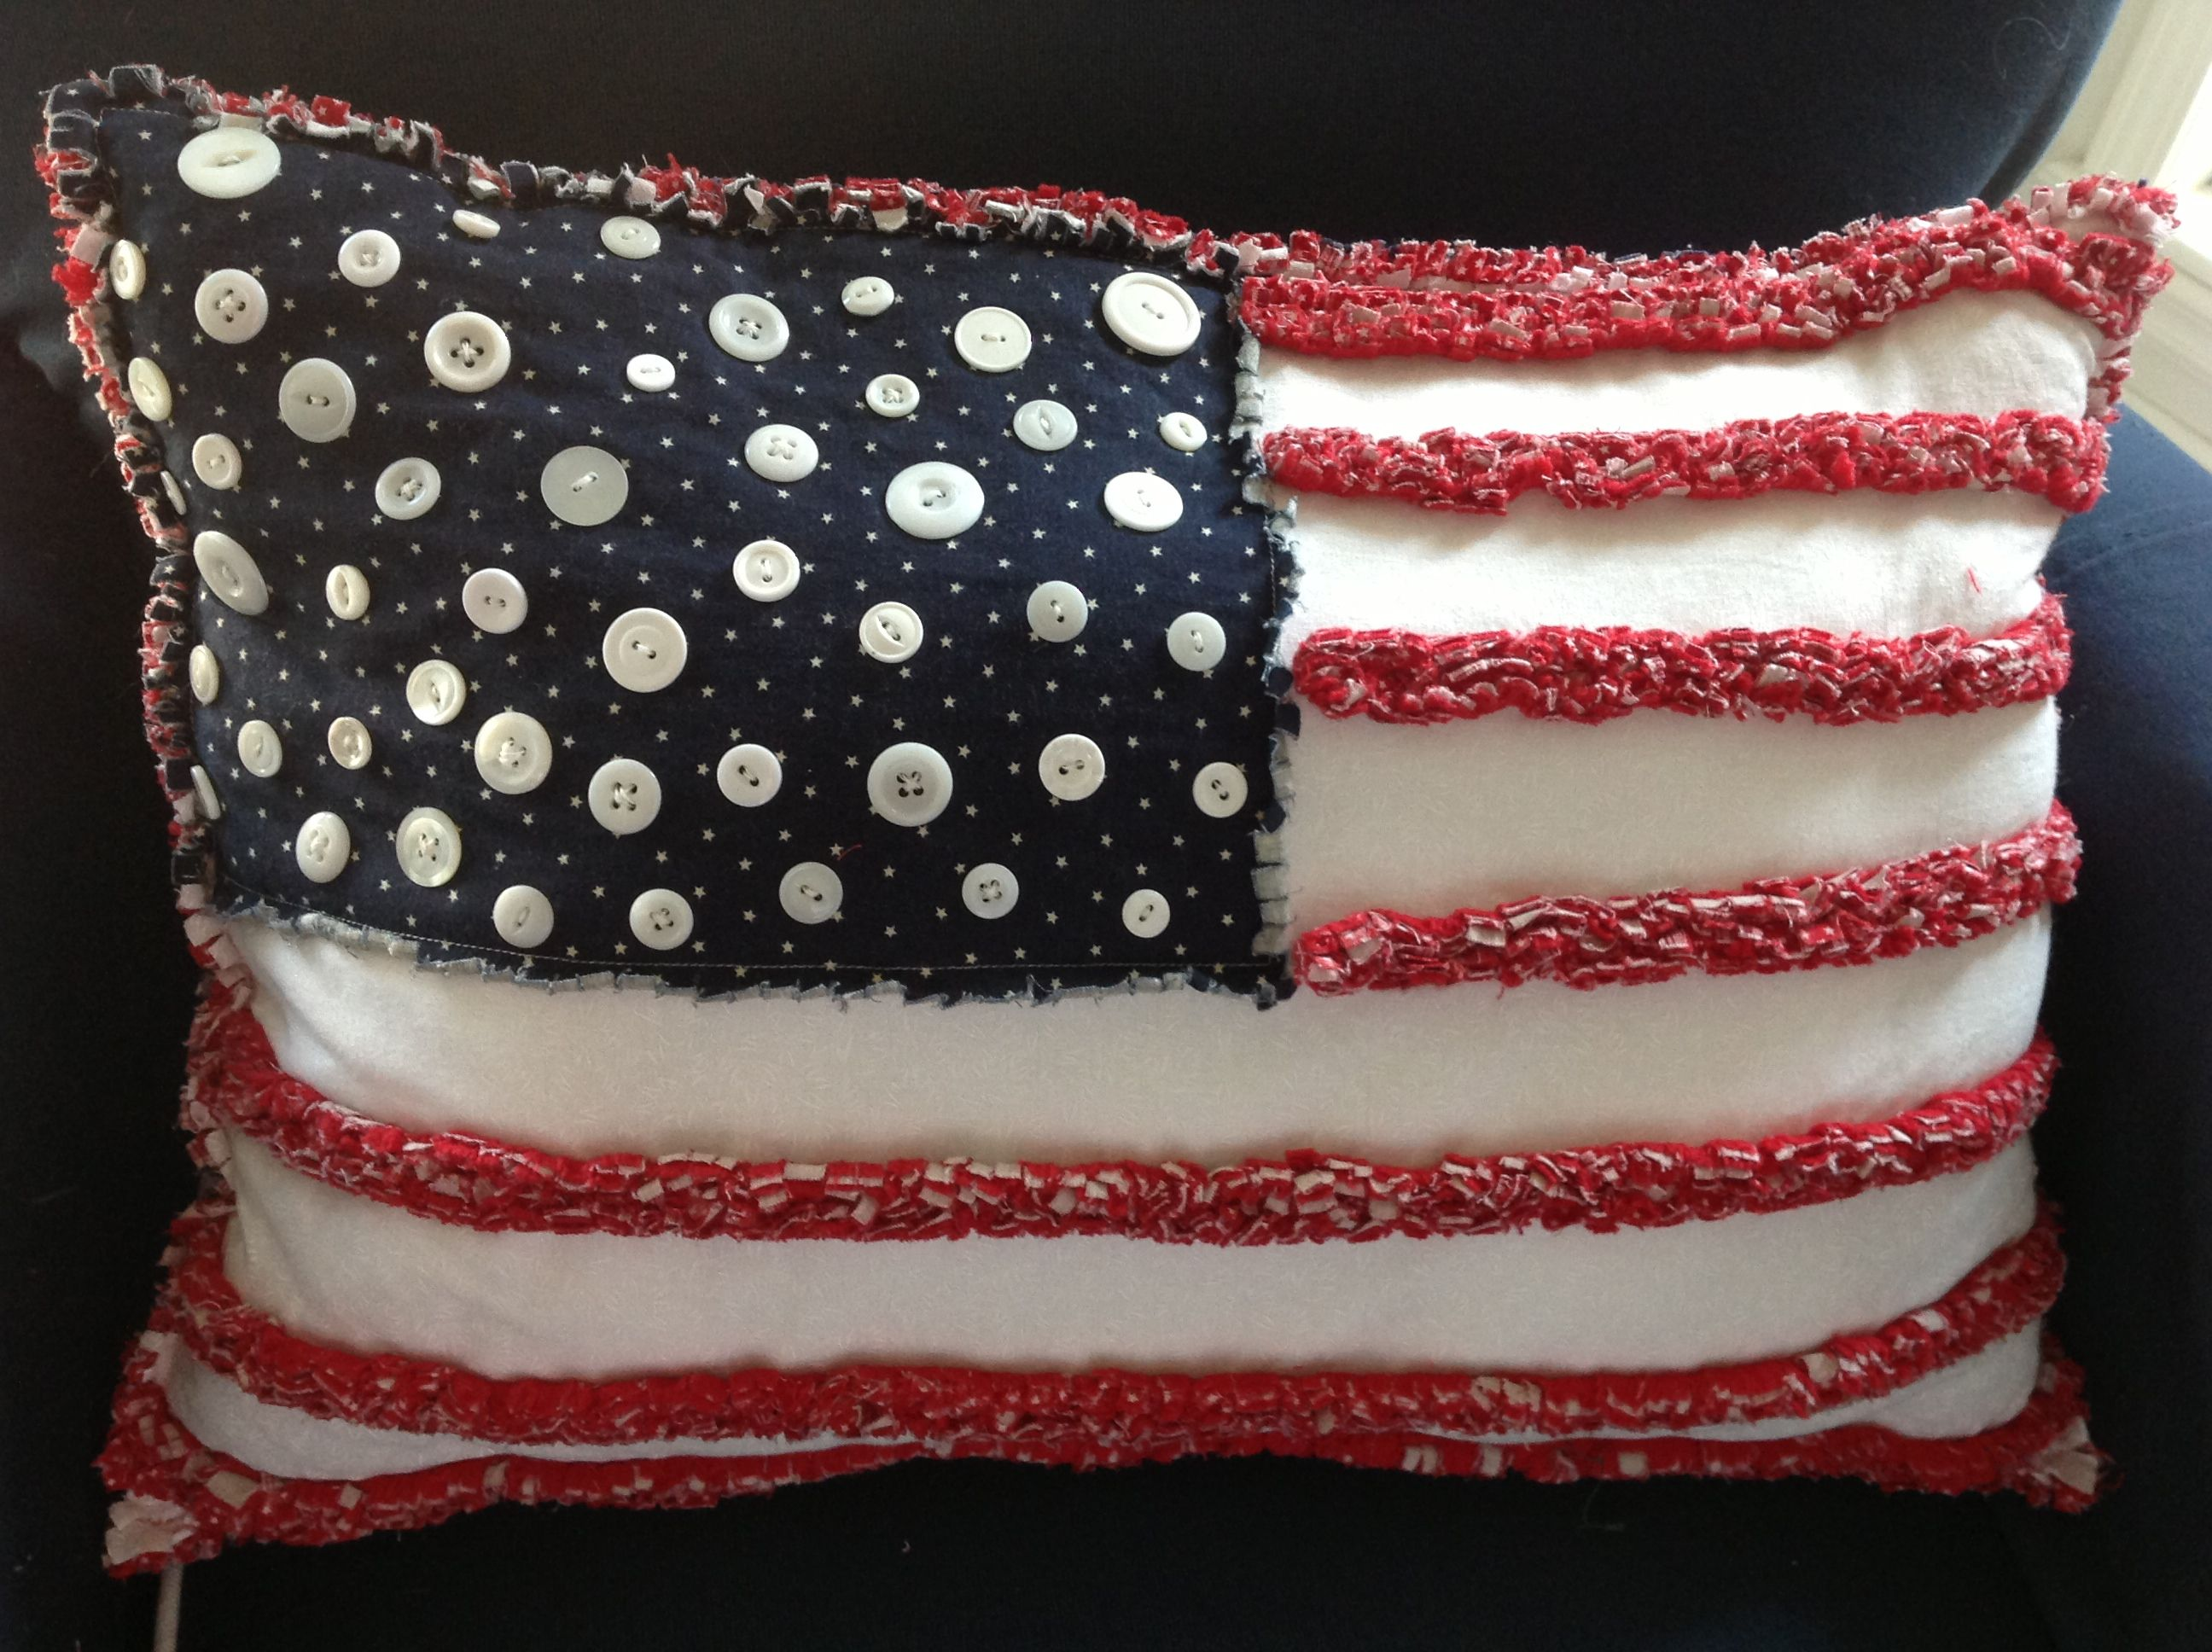 Pillow made a few years ago by Charlotte for the 4th of July. Can't wait to do a new one with her this year.